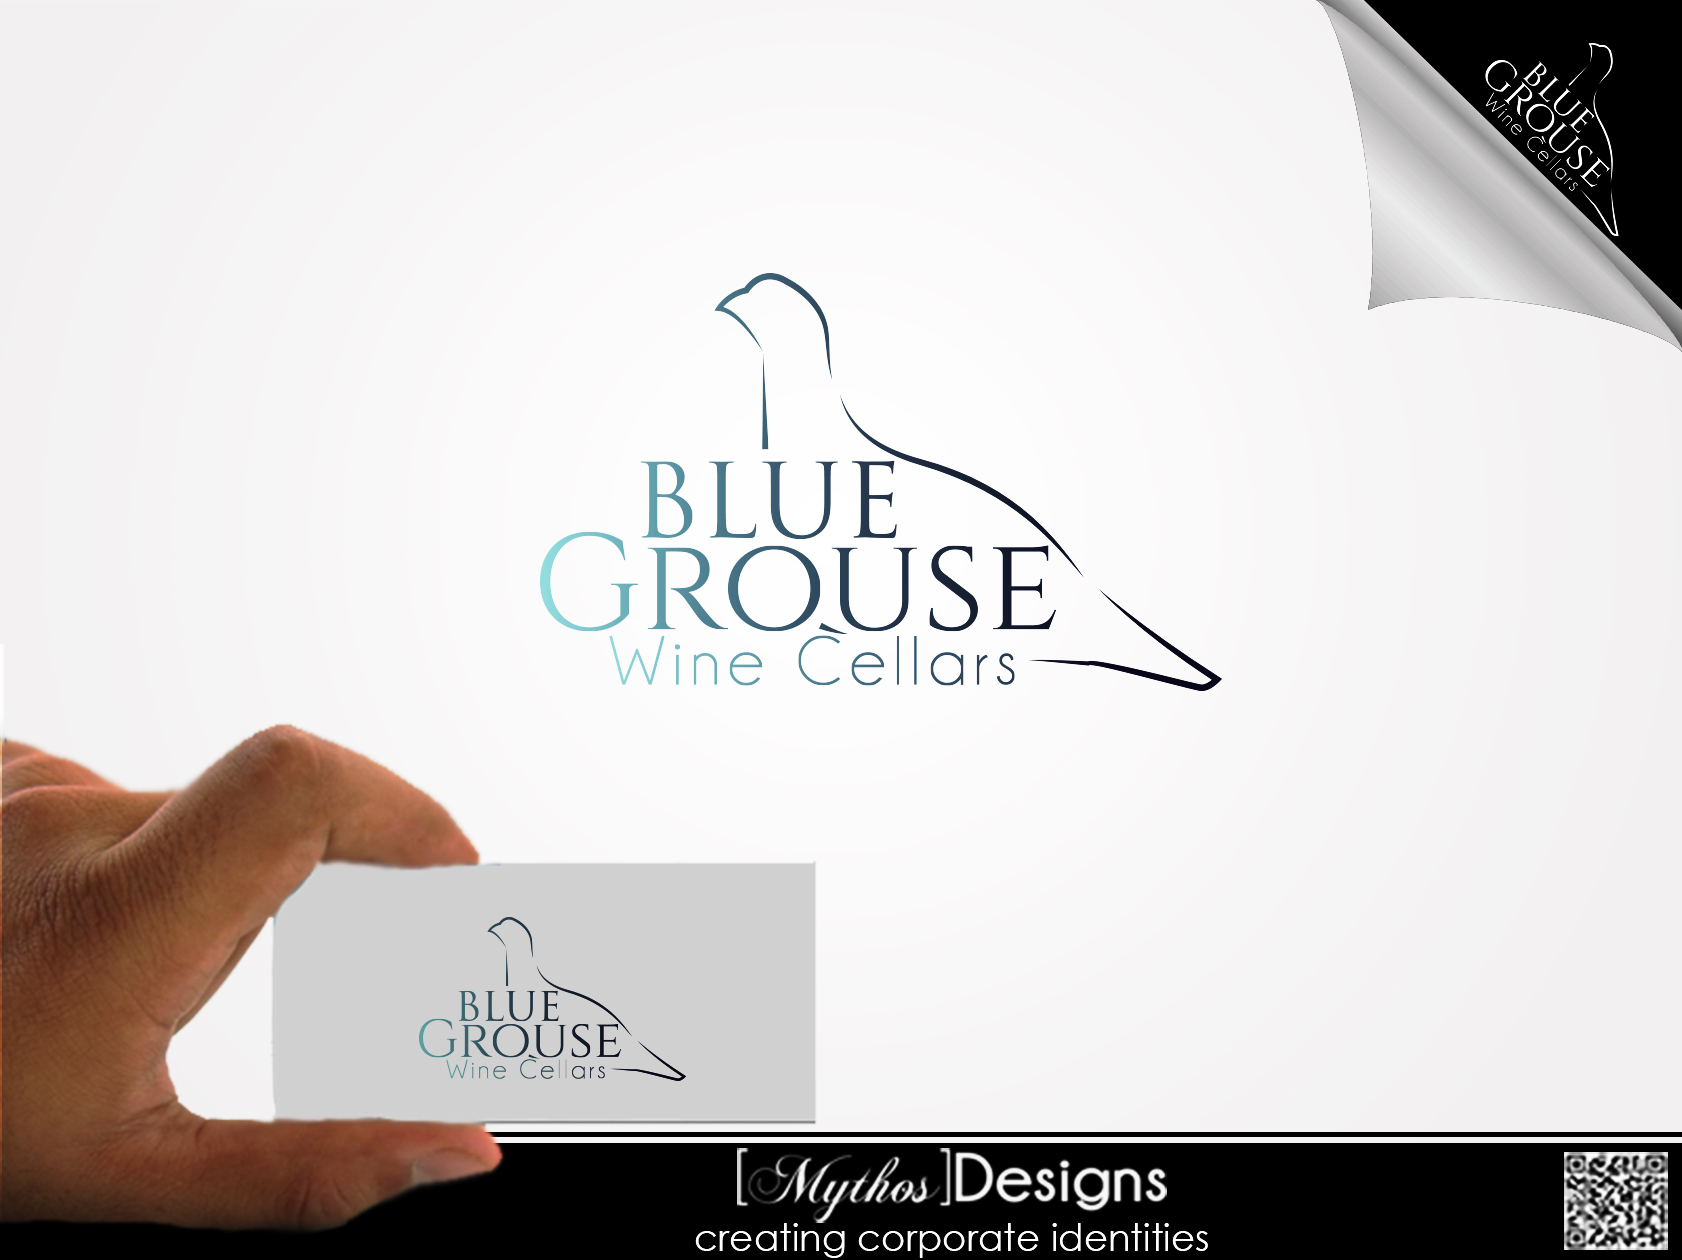 Logo Design by Mythos Designs - Entry No. 130 in the Logo Design Contest Creative Logo Design for Blue Grouse Wine Cellars.